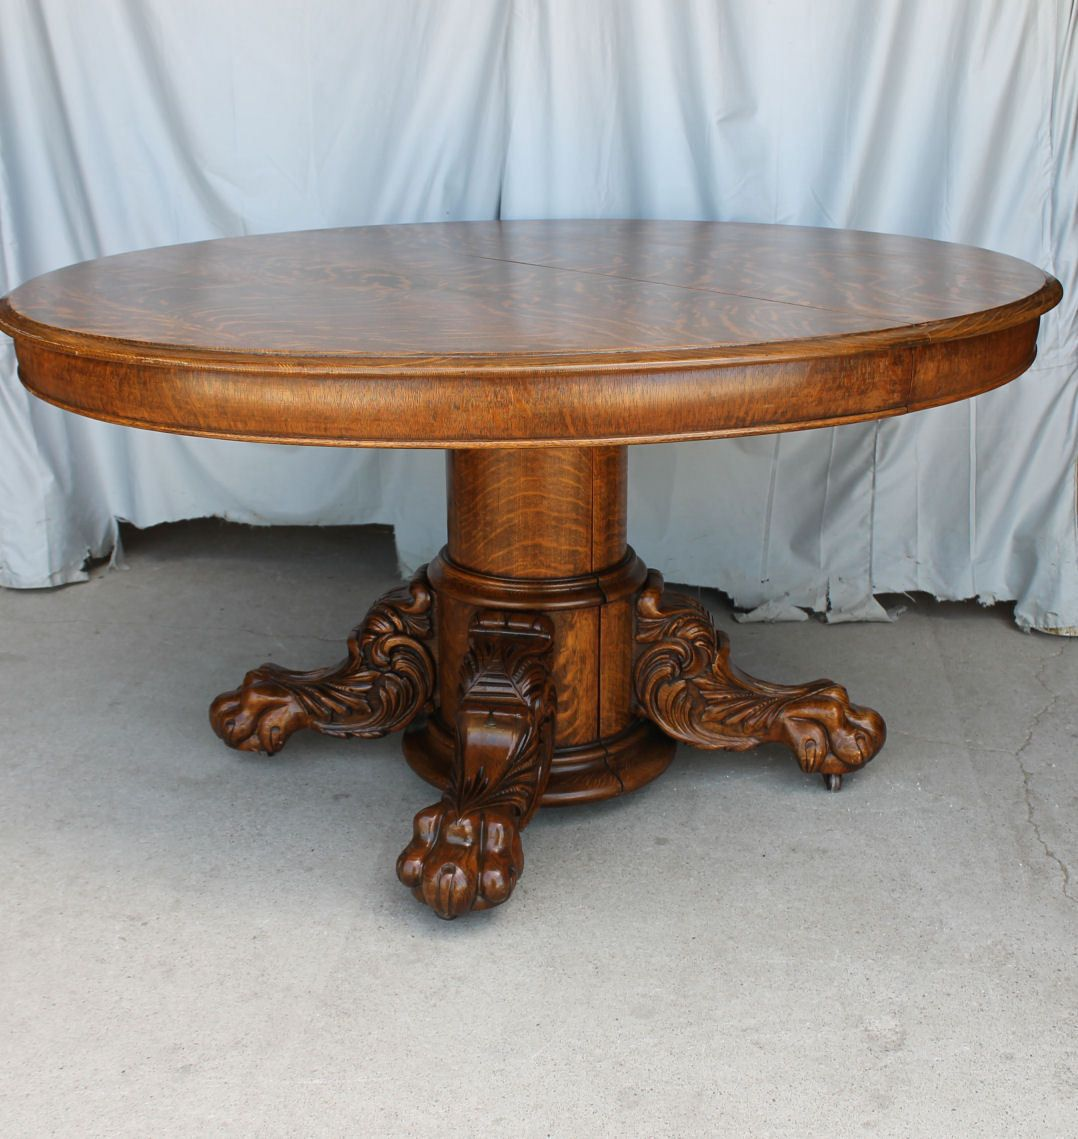 Antique Round Oak Dining Table Large Carved Claw Feet With Original Leaves Ebay Antique Dining Tables Dining Table Oak Dining Table